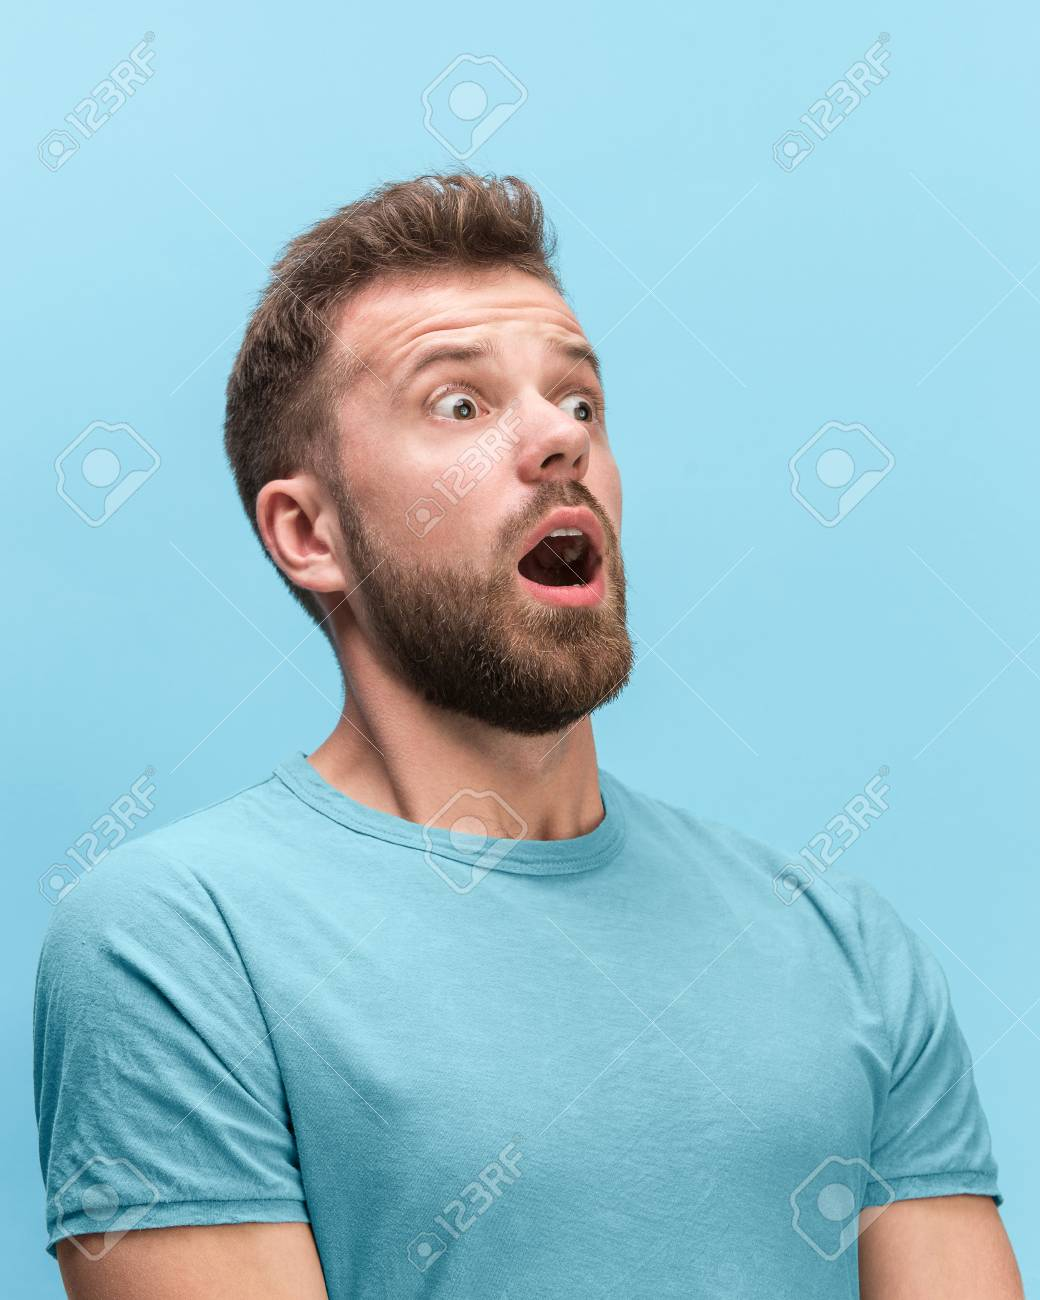 The surprised and astonished young man screaming with open mouth isolated on blue background. concept of shock face emotion - 112330193